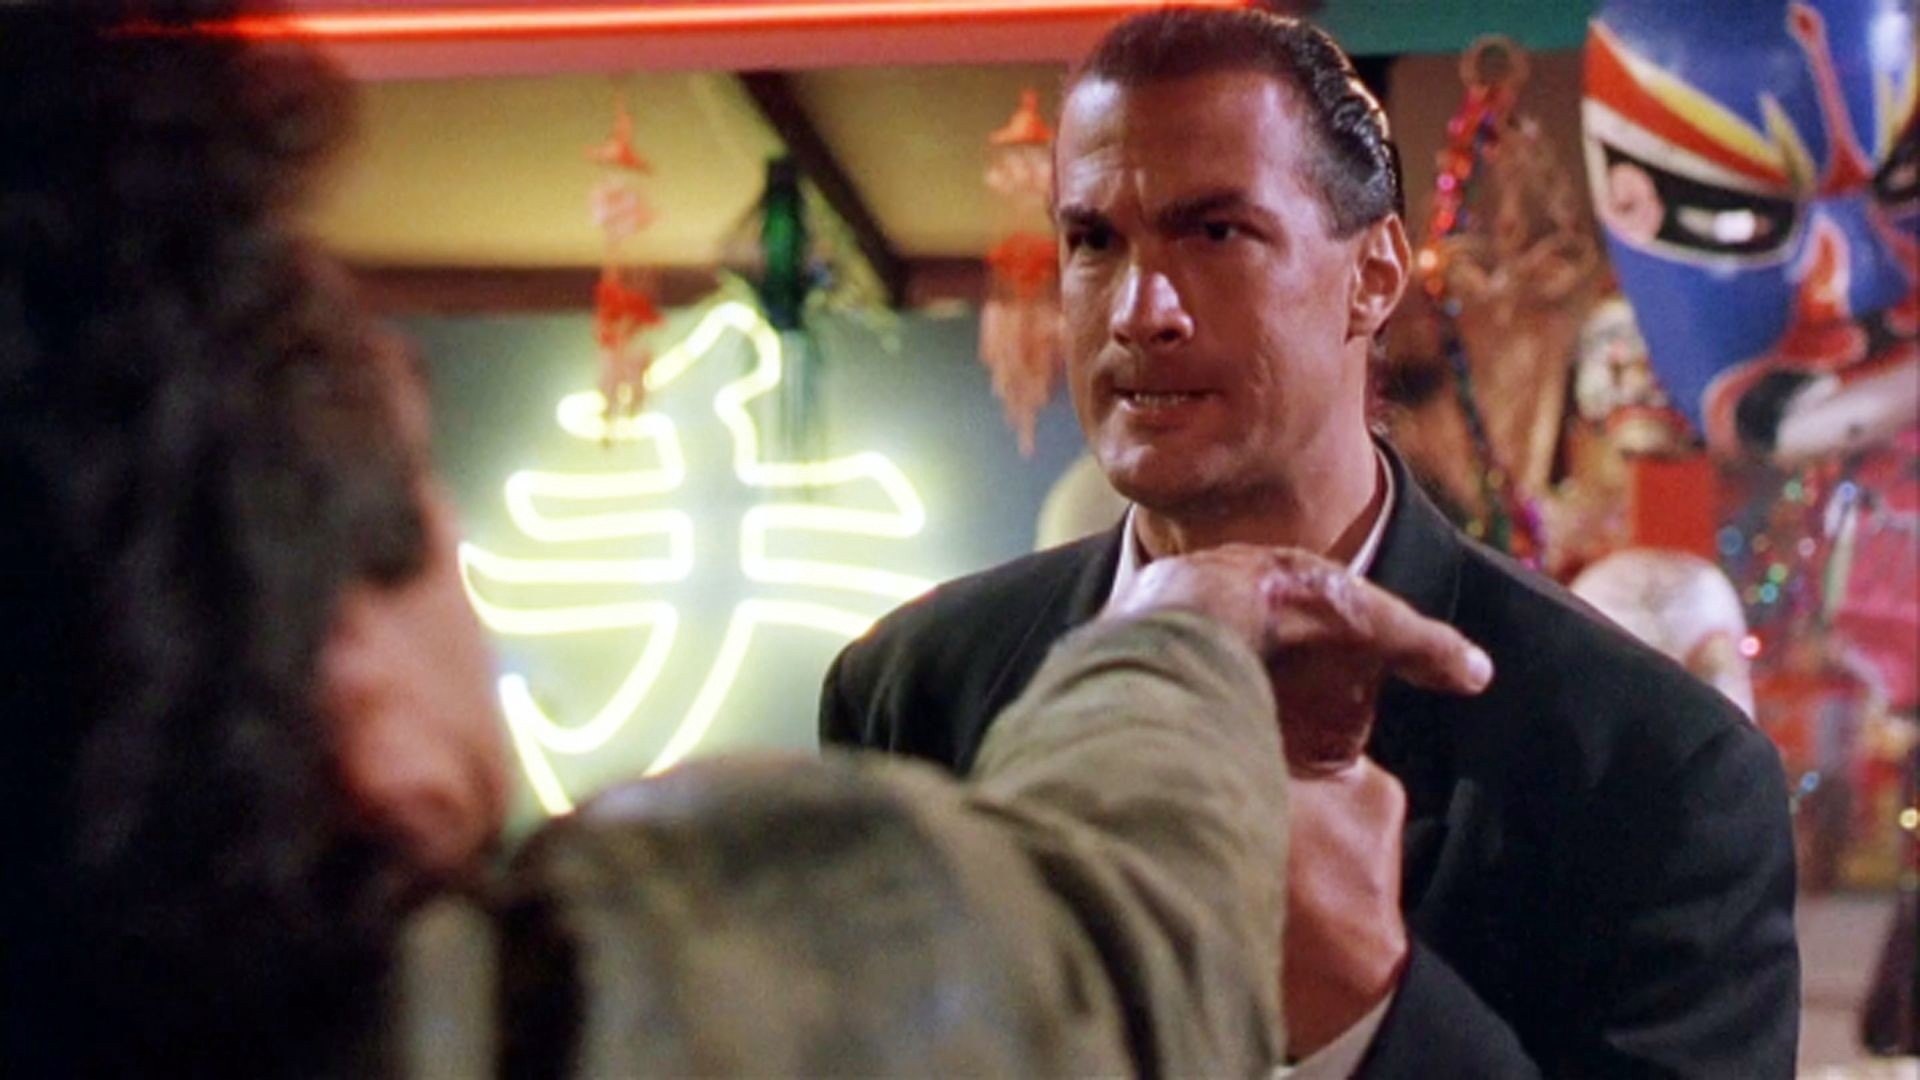 Mason Storm (Steven Seagal) glaring at a person whose hand he's yanked towards him palm-up.